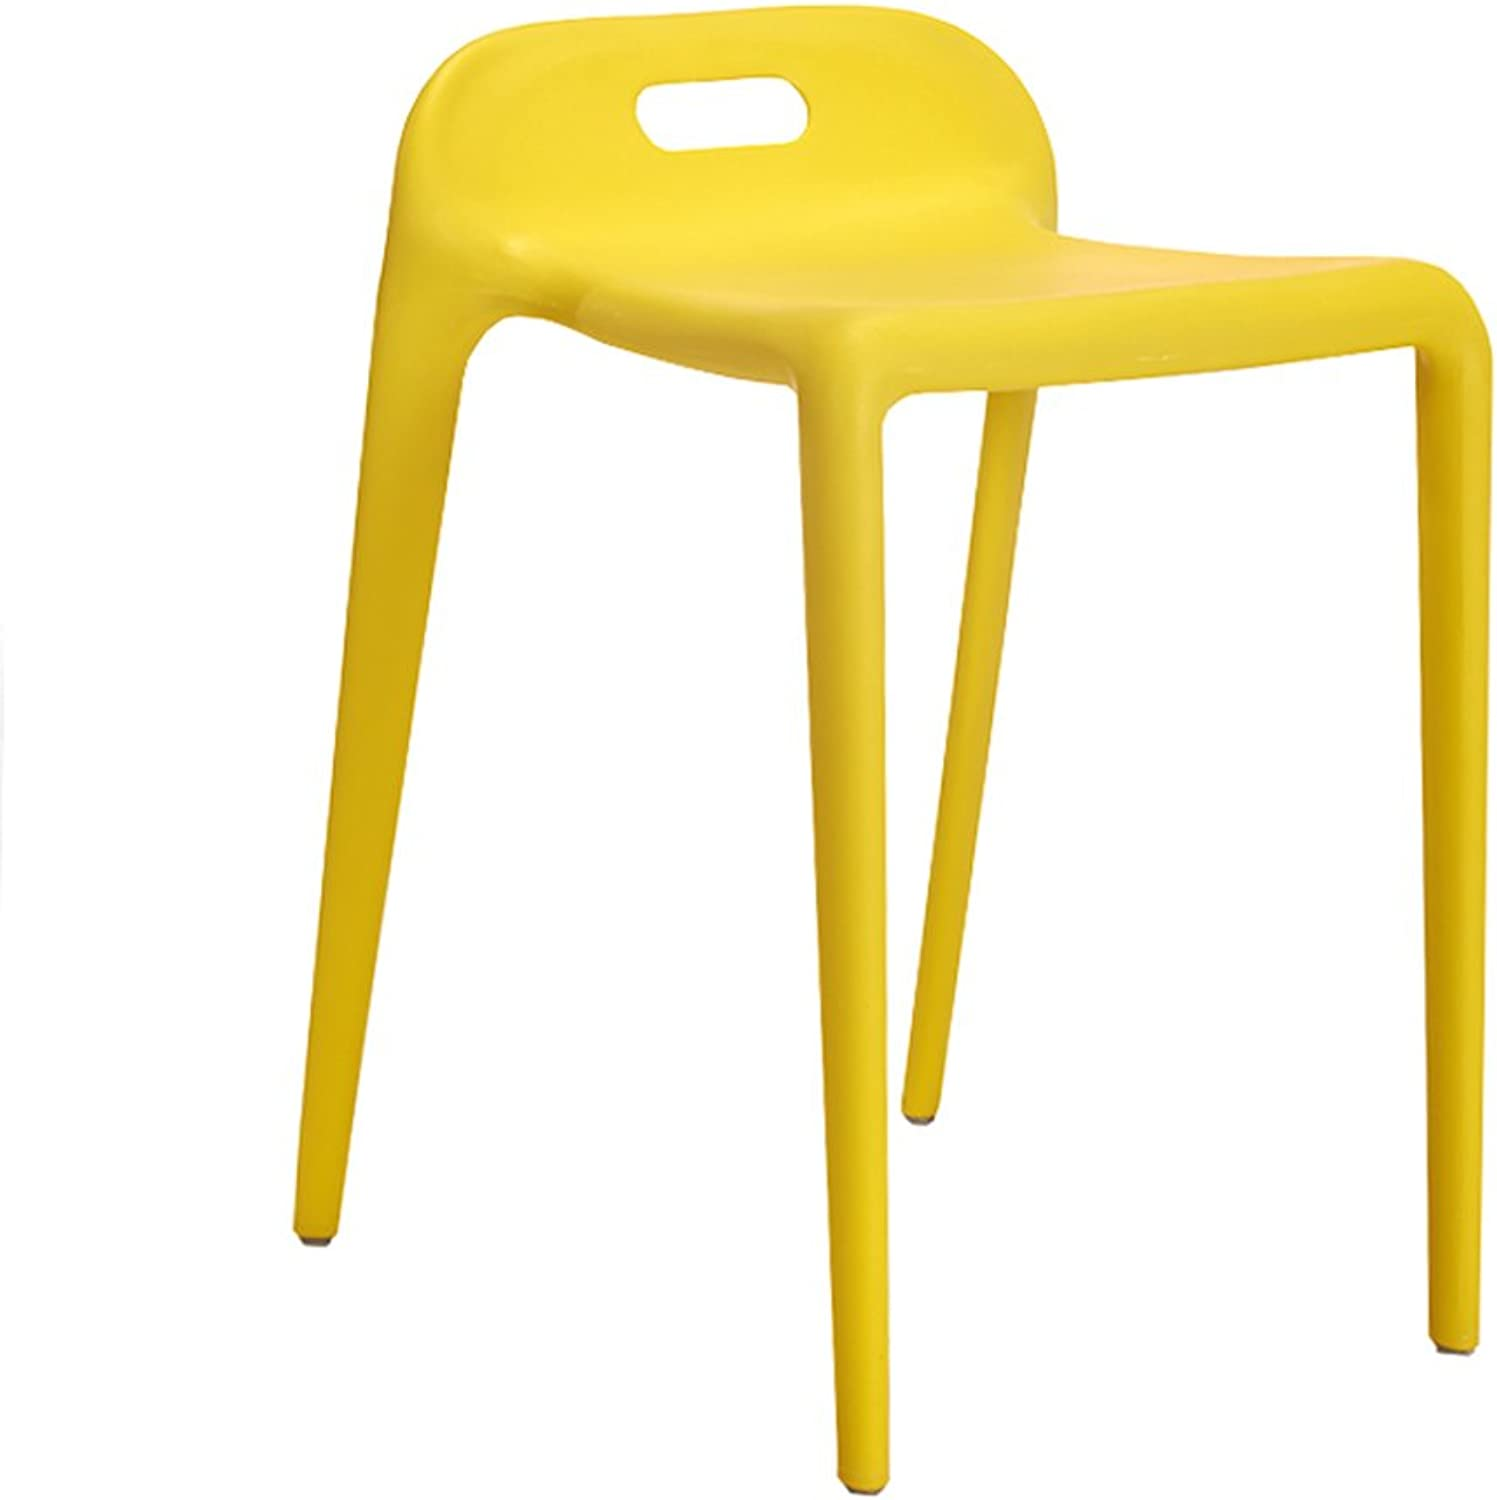 ASJHK Chair, Fashion Modern Dining Chair Simple Plastic Reception Chair Restaurant Rest Chair Chair (color    5)